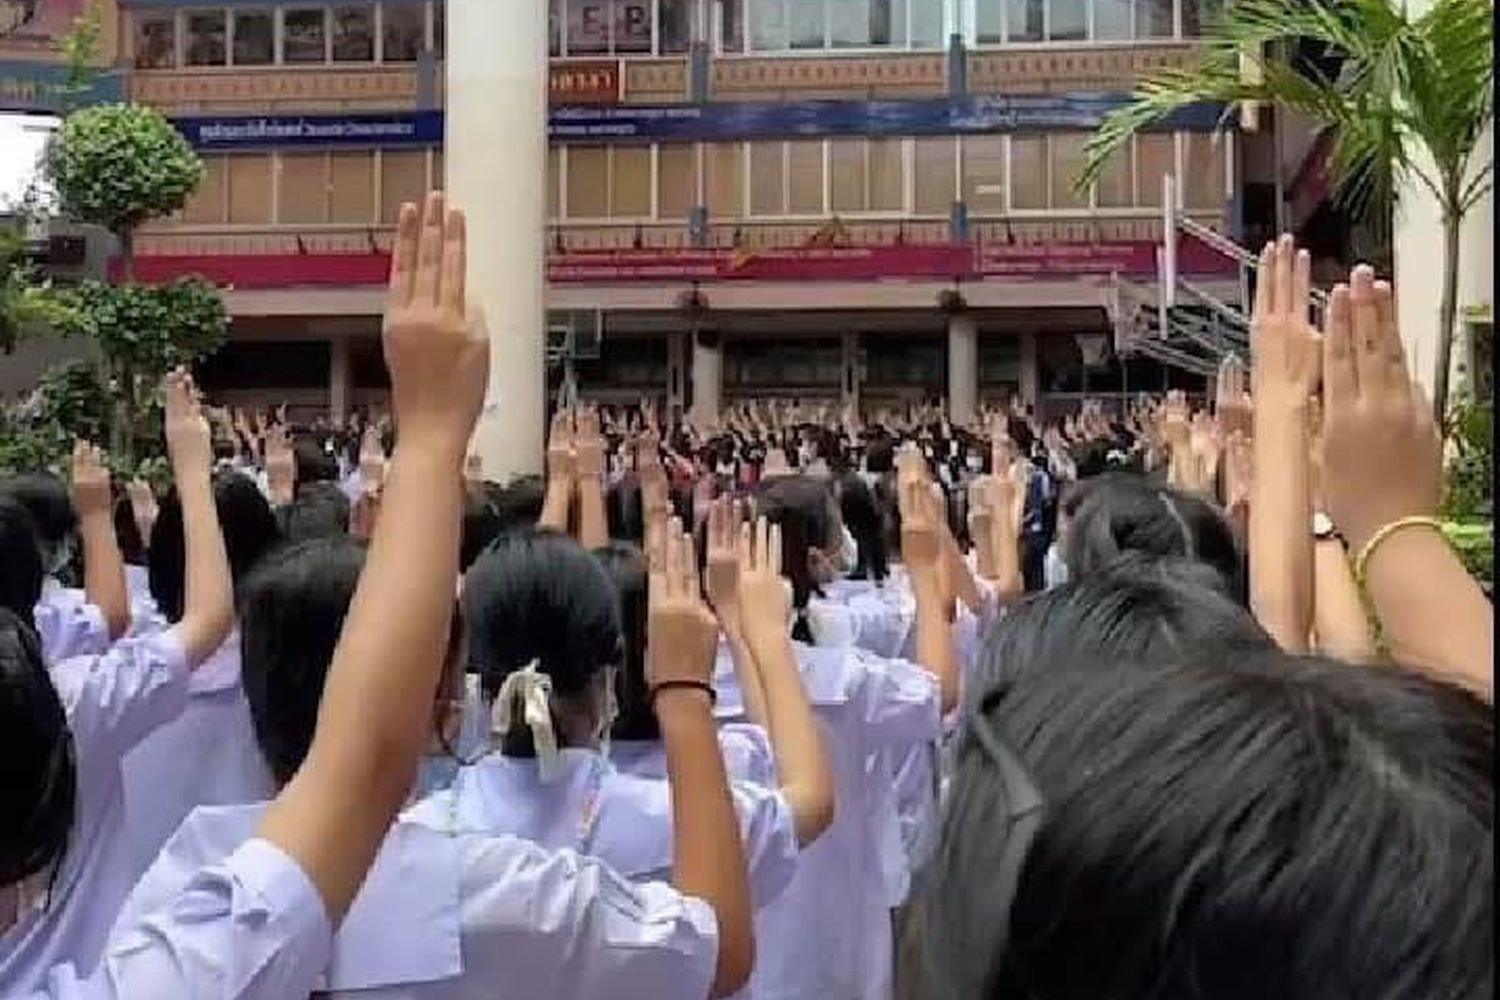 Students show a three-finger salute at a school on Monday. (Photo from Facebook@TheReportersTH)